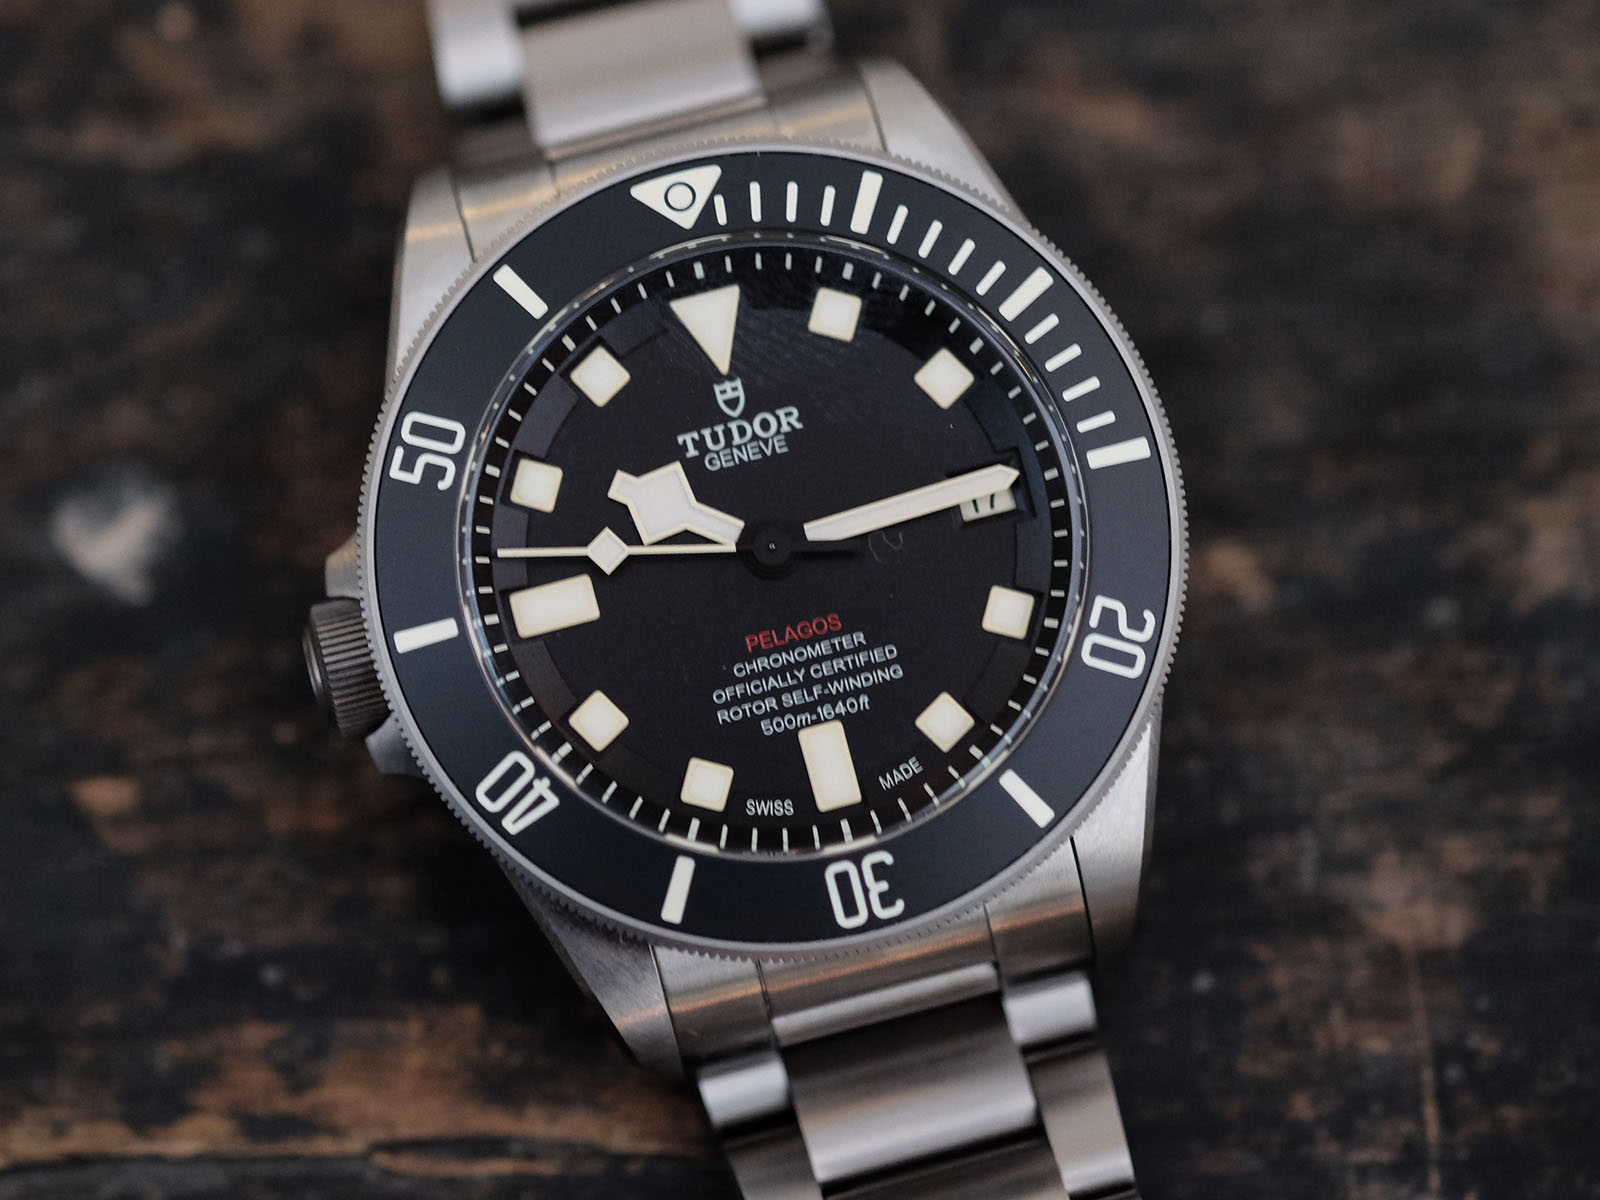 Destro Diver - The Tudor Pelagos LHD